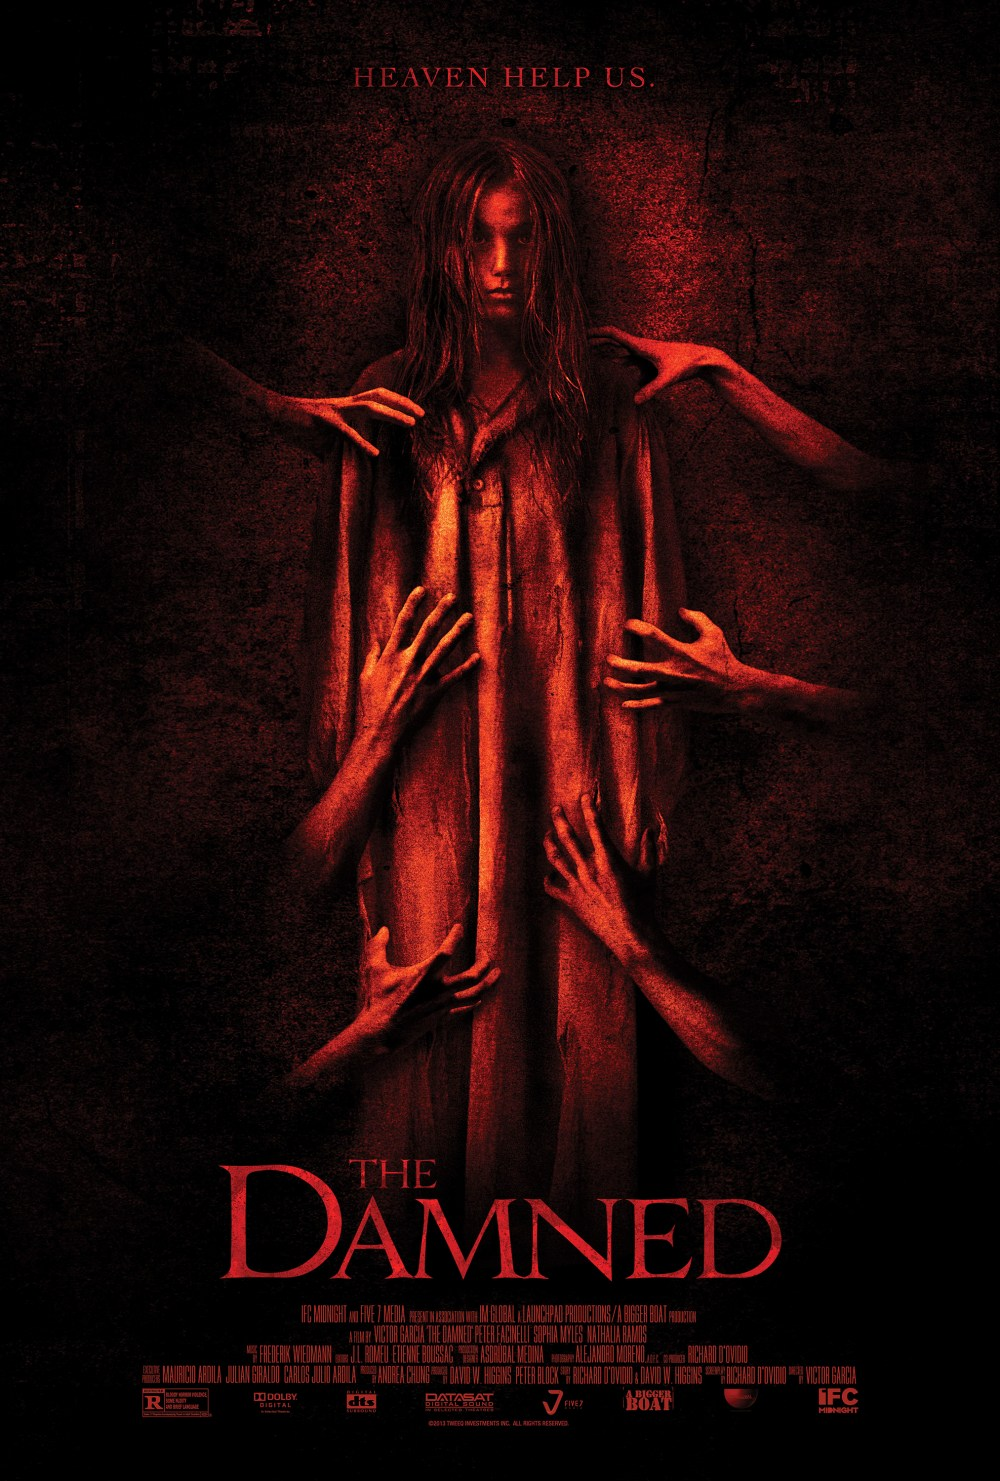 THE-DAMNED_27x40_1Sheet